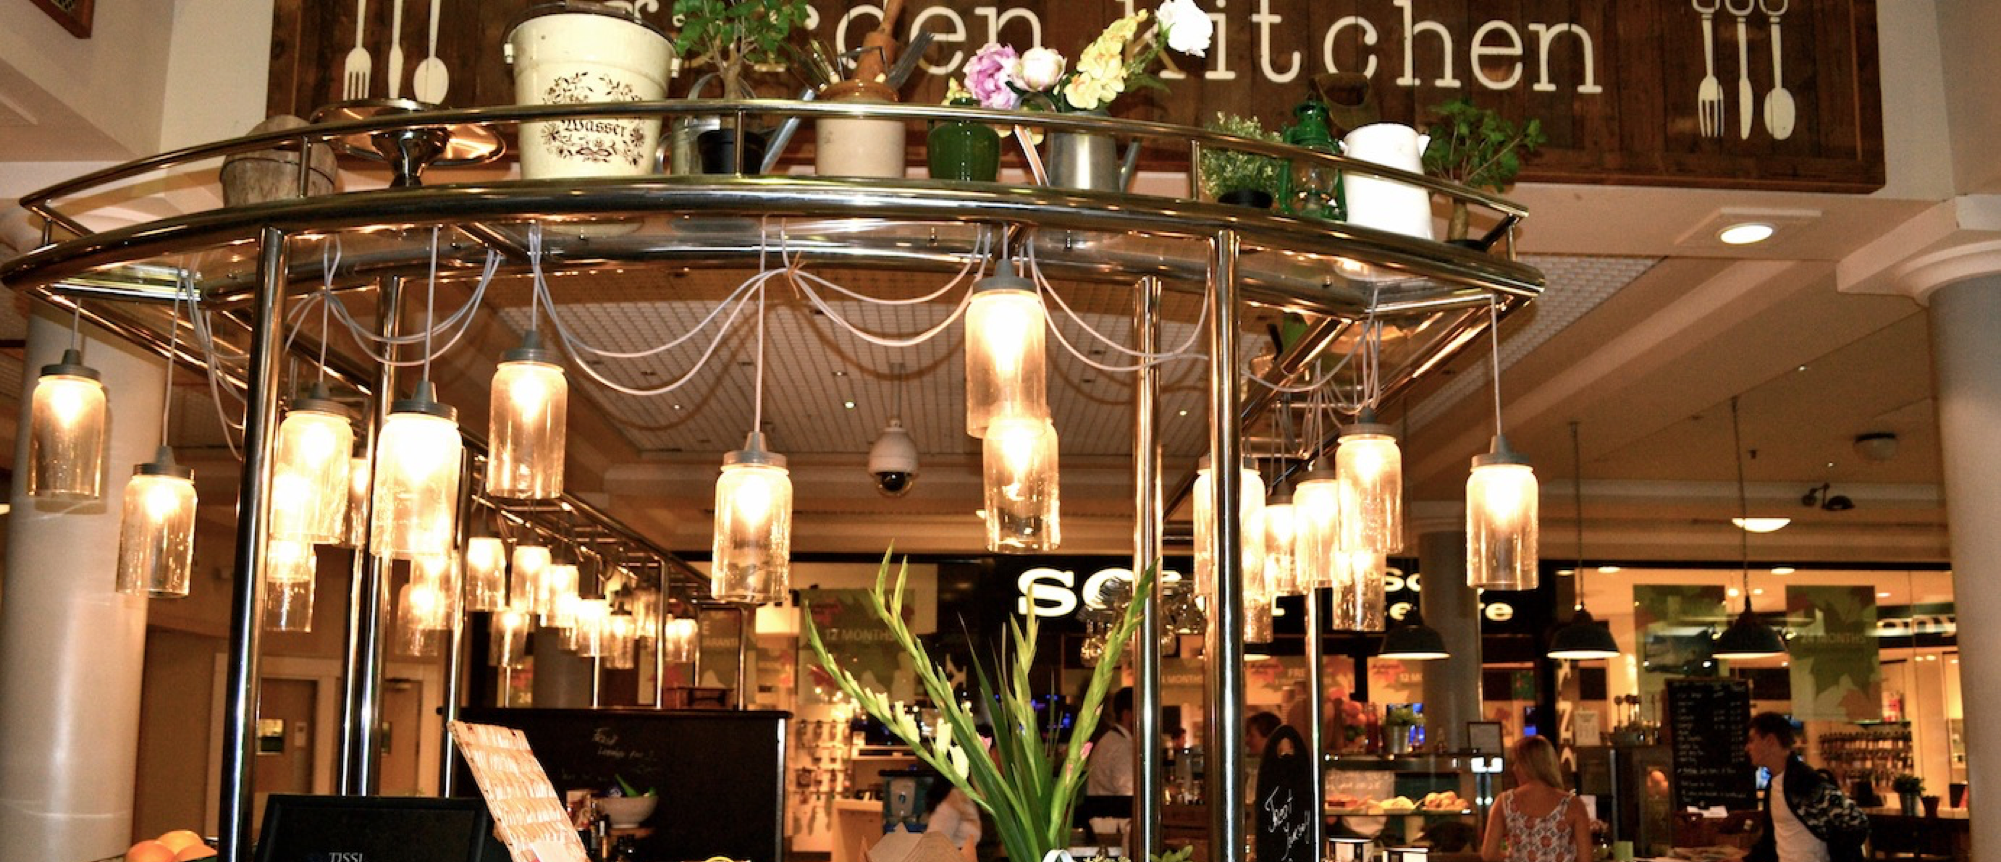 Sanctuary in the City at Garden Kitchen Newcastle